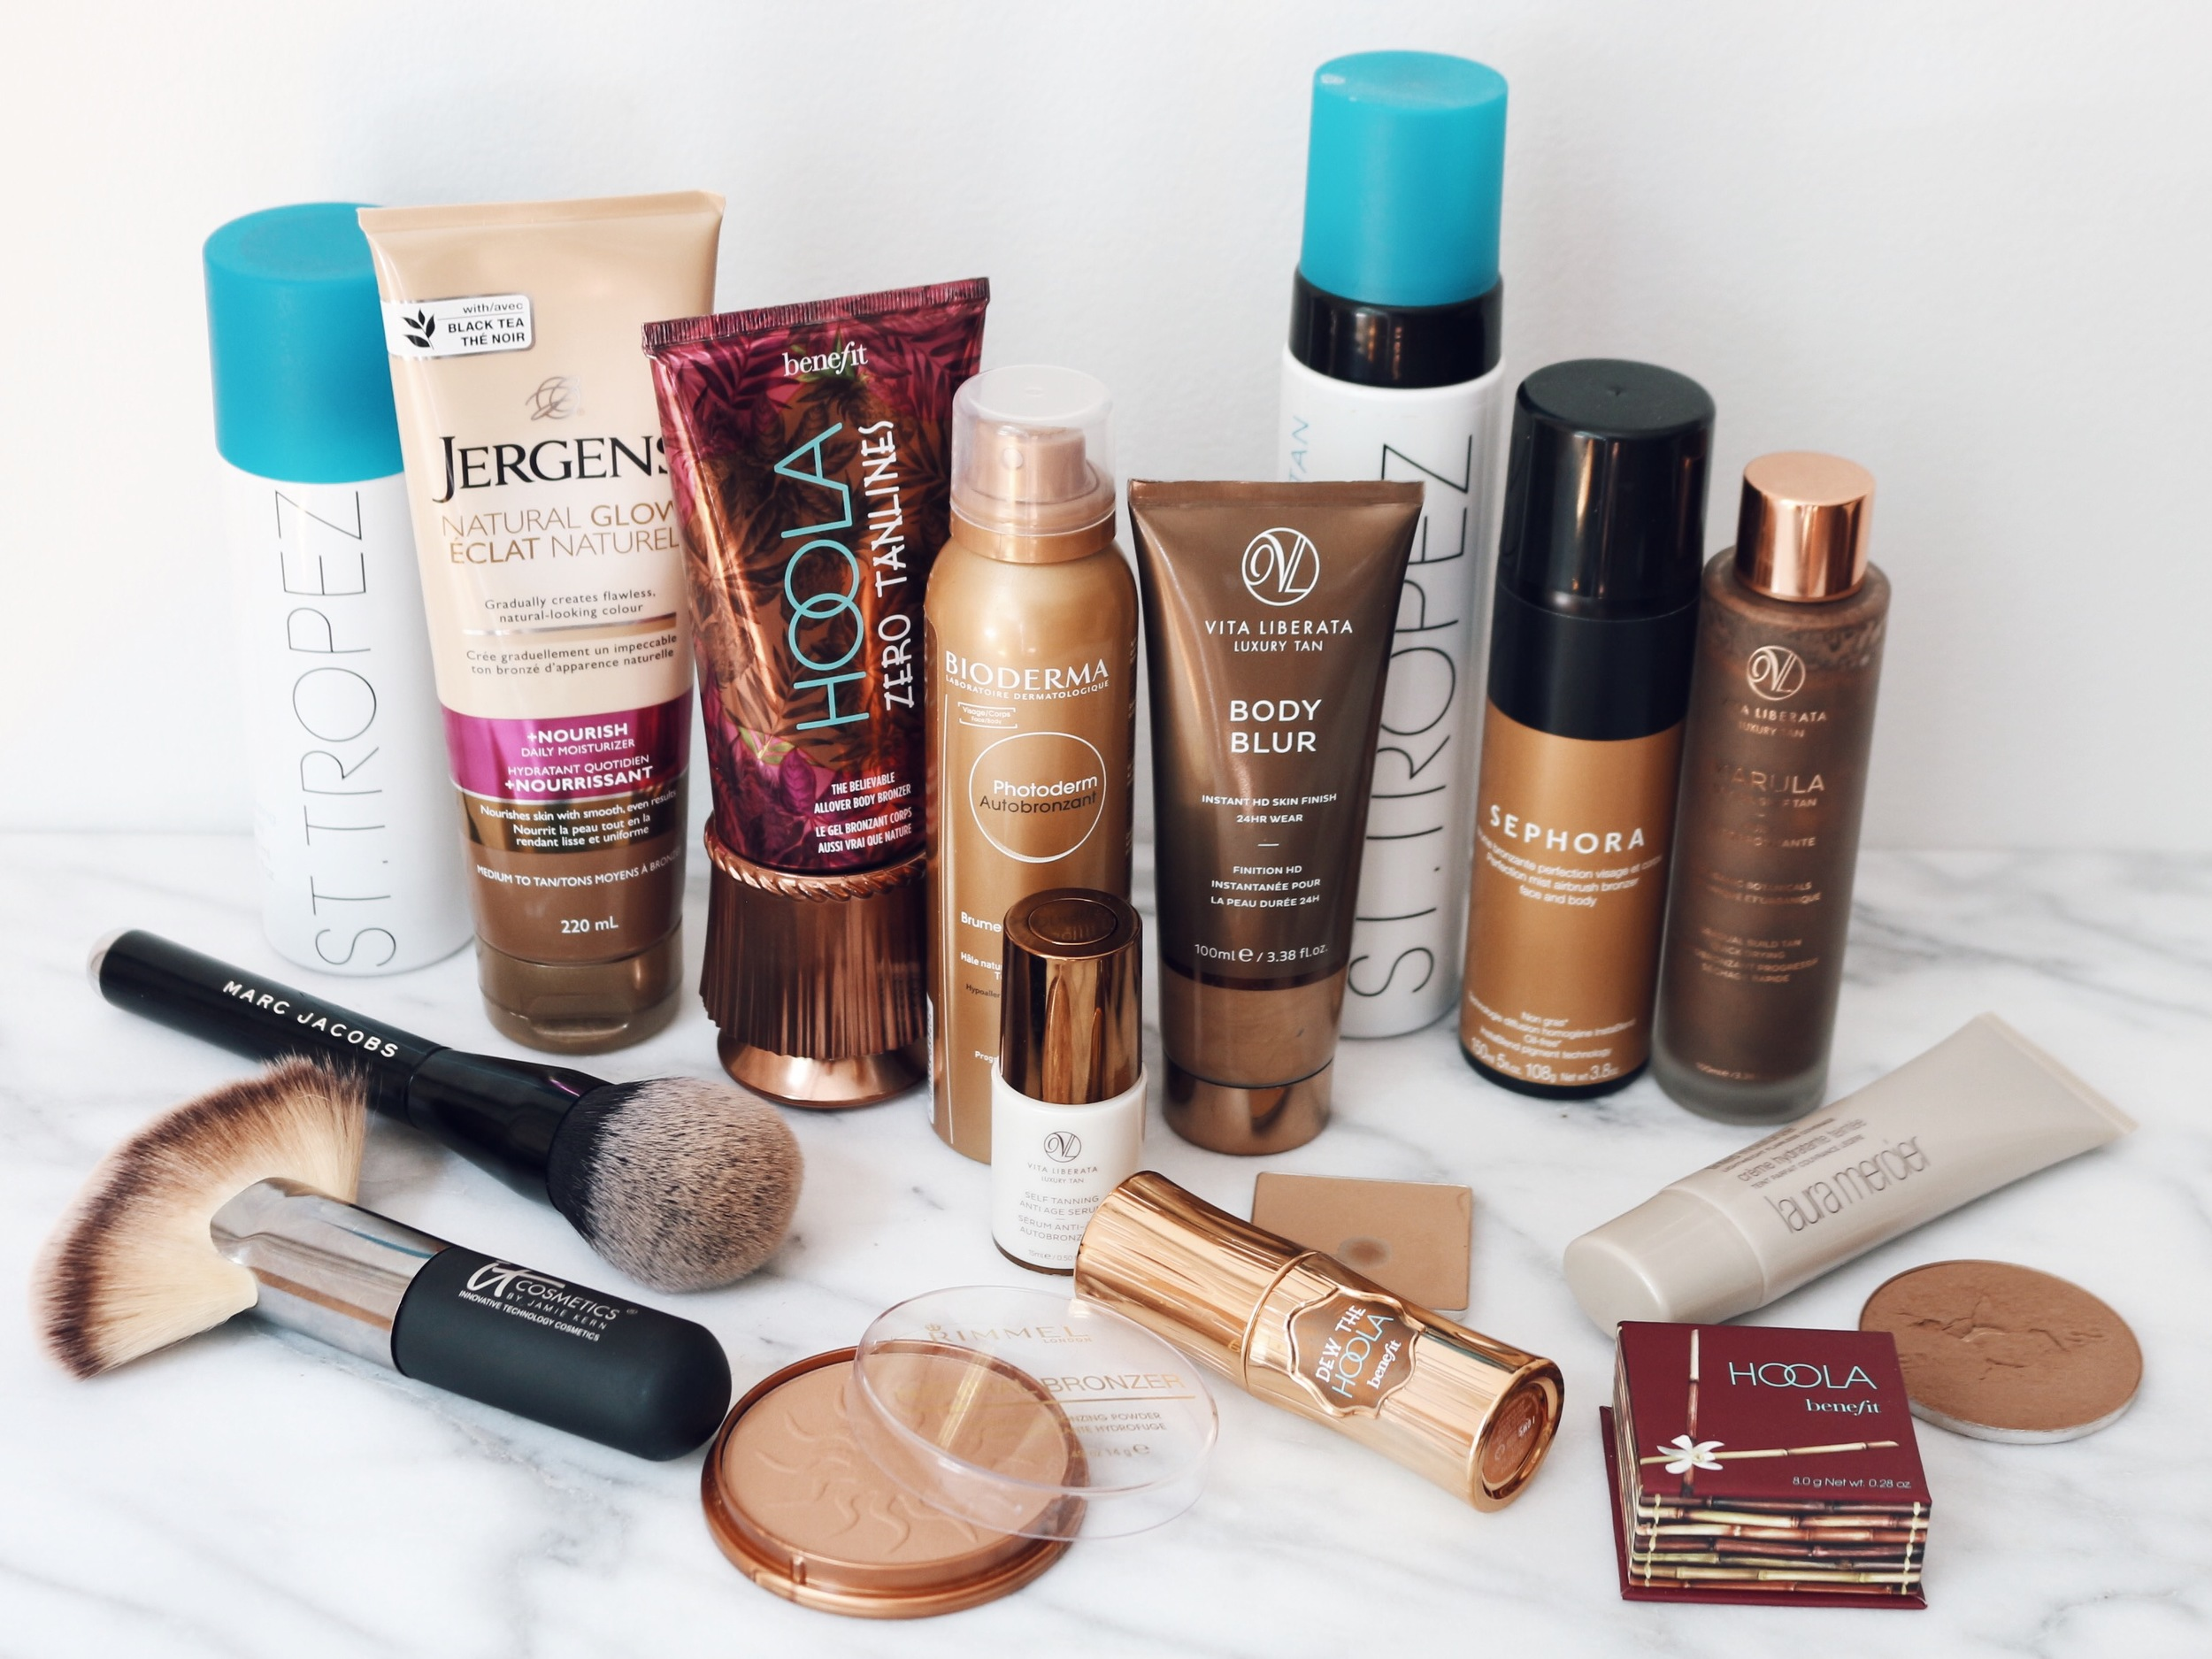 WOAHSTYLE.COM-How To Fake the Perfect Tan-Faux Tanning Week_7656.JPG